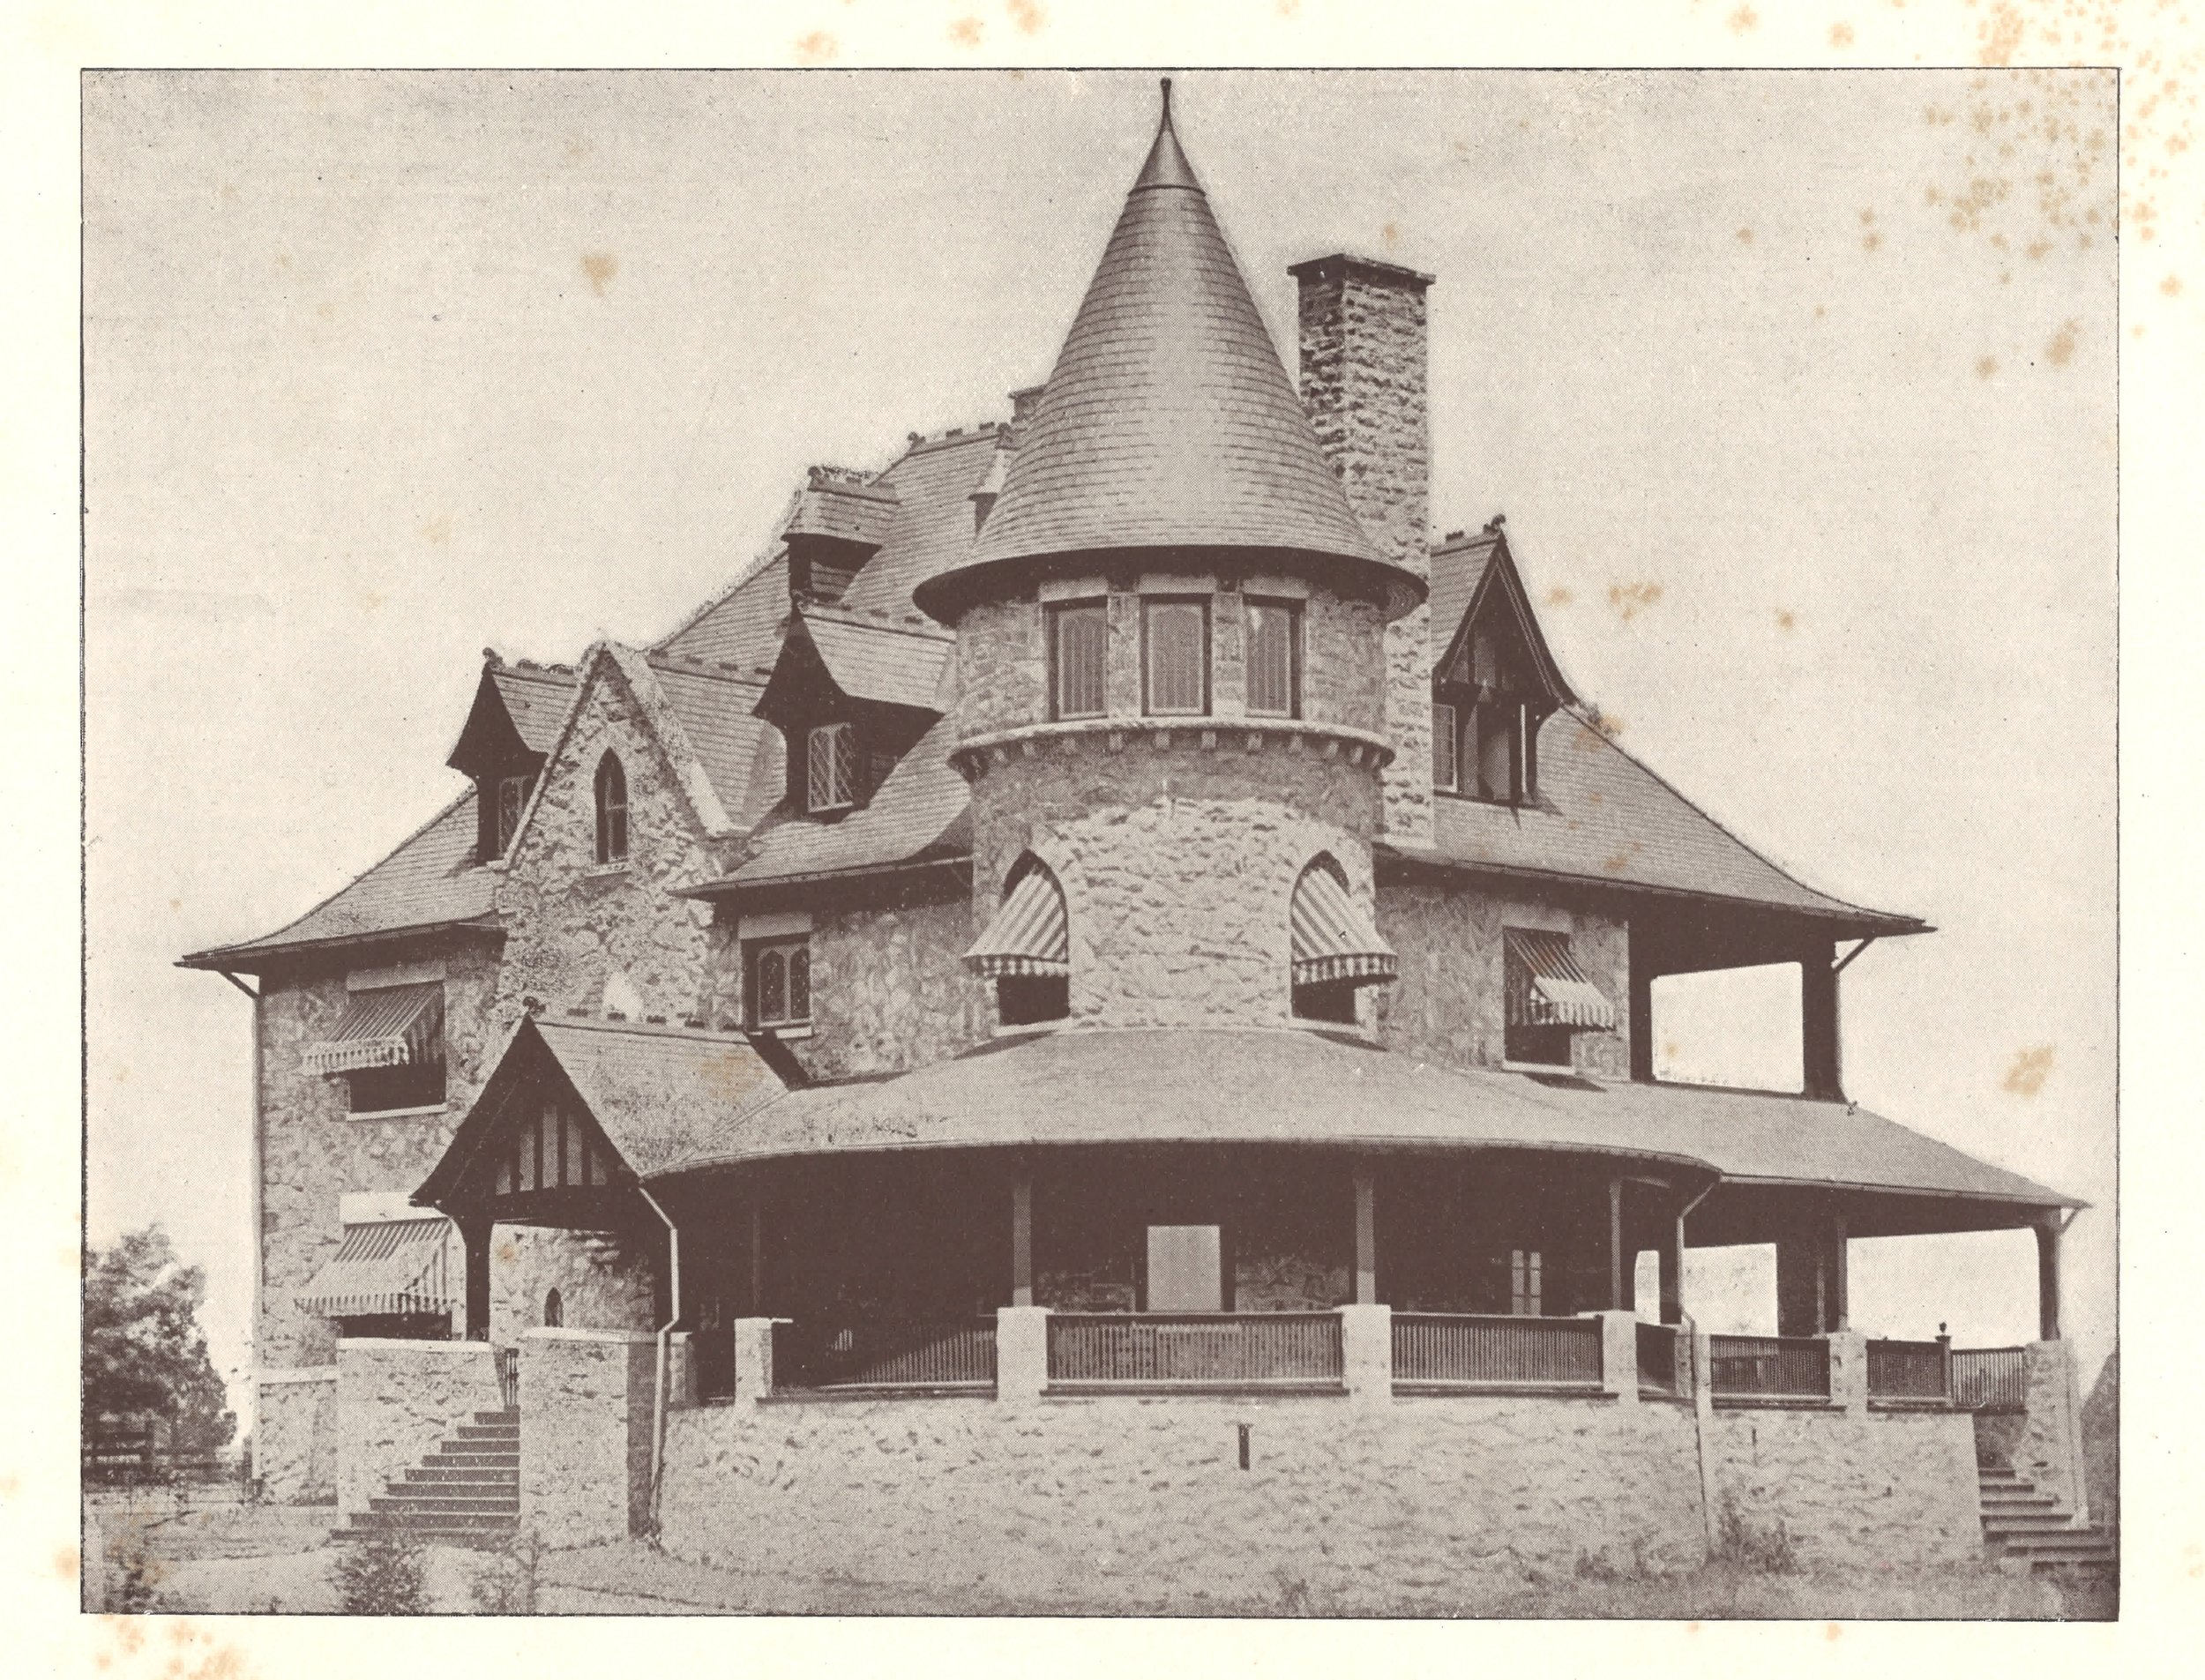 Narberth, PA home - 1894